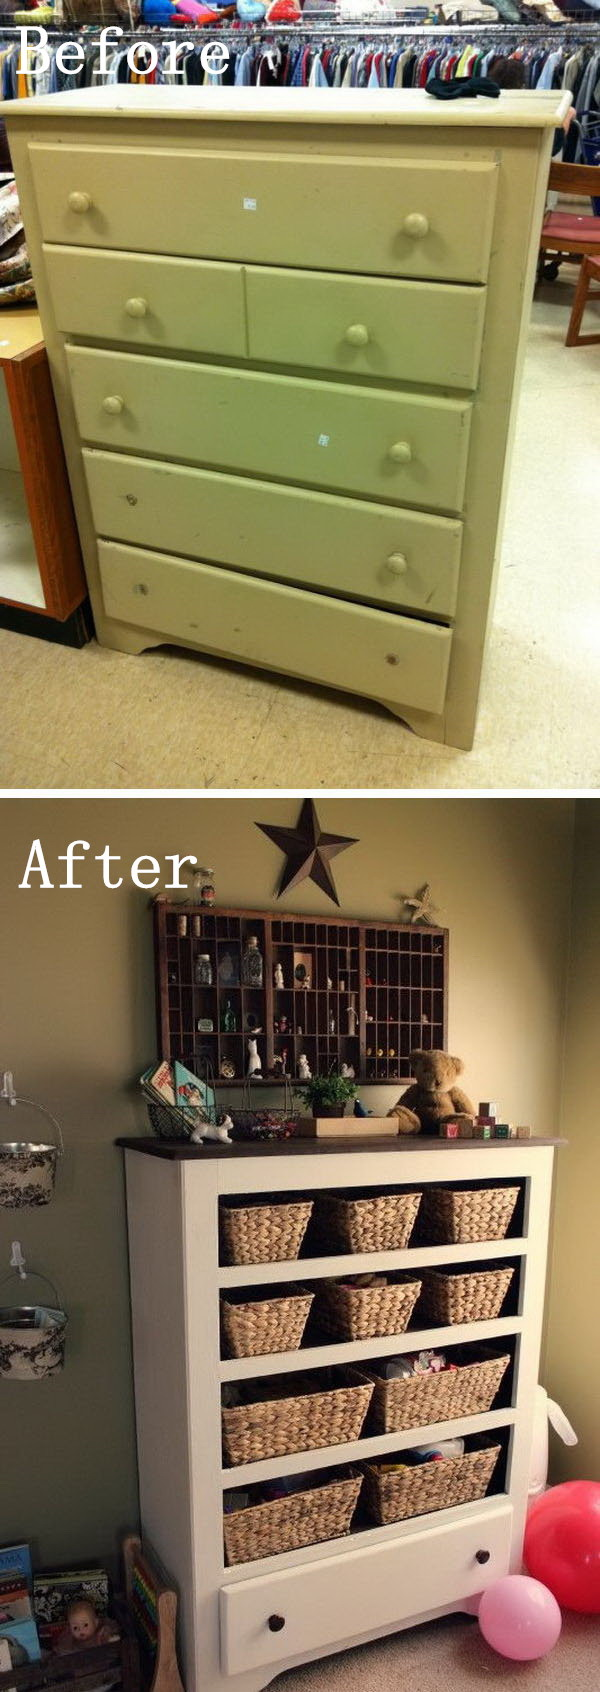 Best Of Before After Furniture Makeovers Creative Diy Ways To